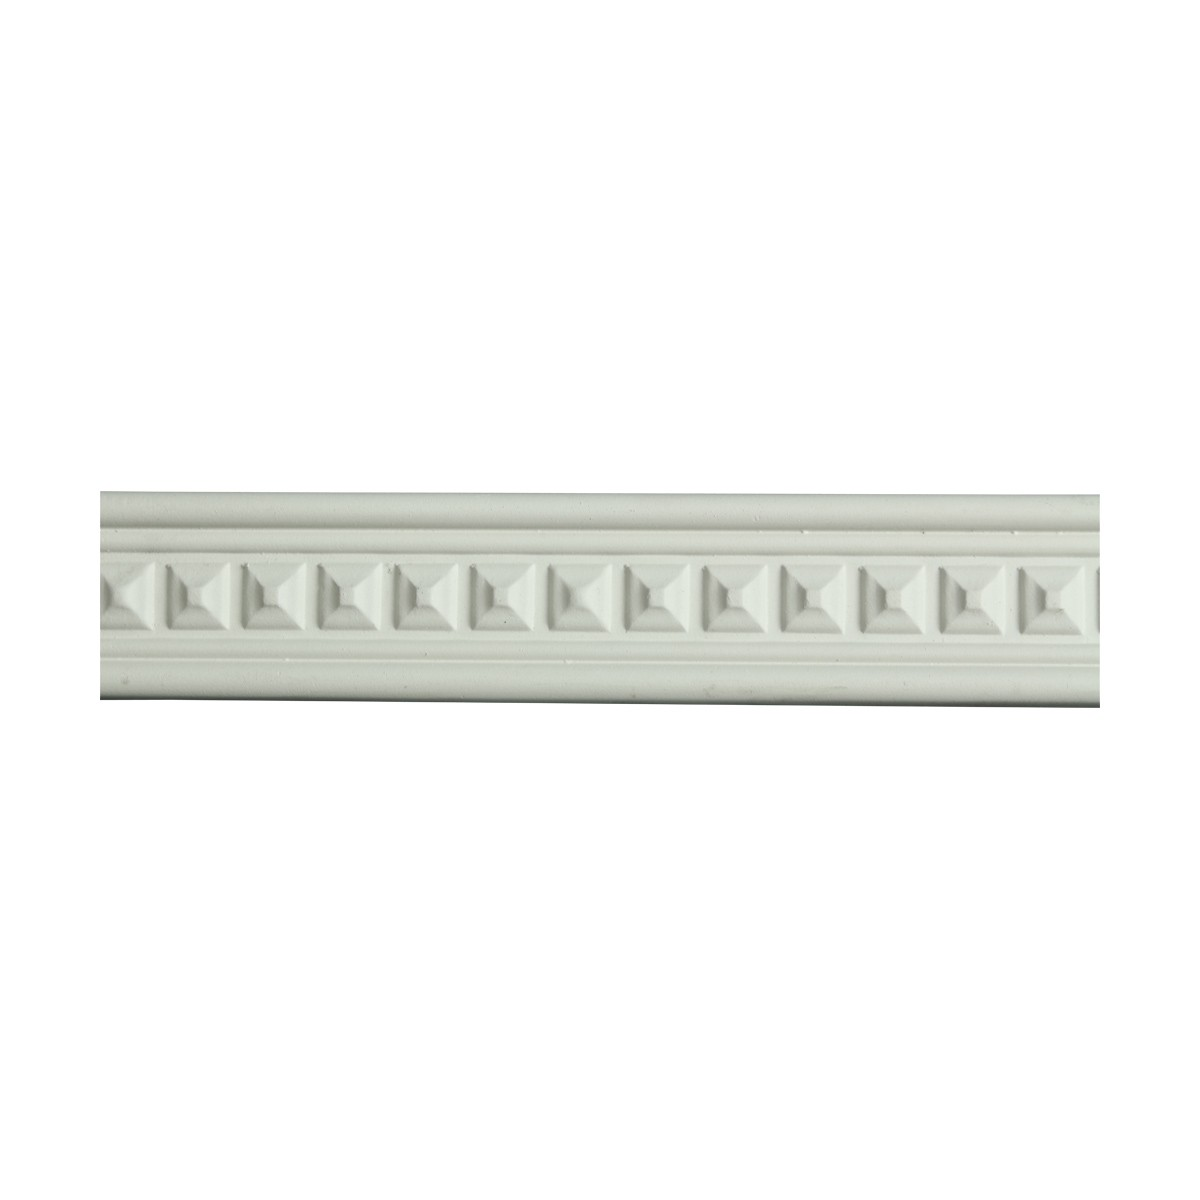 Renovators Supply Crown Molding White Urethane Townsend Ornate  16 Pieces Totaling 1520 Length White PrePrimed Urethane Crown Cornice Molding Cornice Crown Home Depot Ekena Millwork Molding Wall Ceiling Corner Cornice Crown Cove Molding